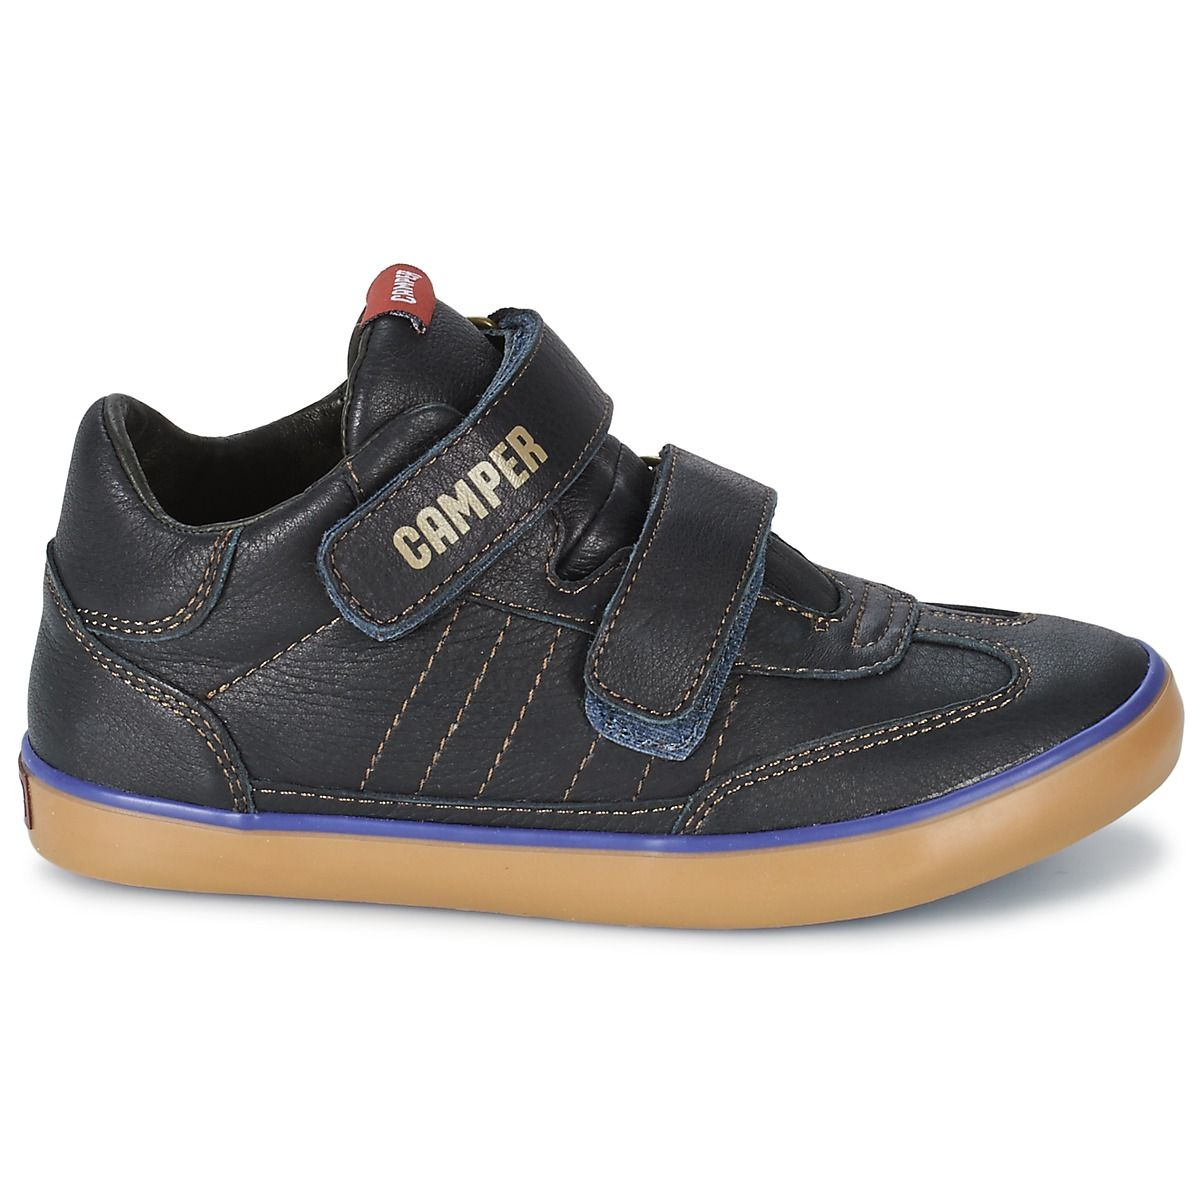 Excellent quality and comfort for kids with these leather trainers by Camper shoes #shoes #trainers #urban #fashion #leather #campershoes #kids #children #uk